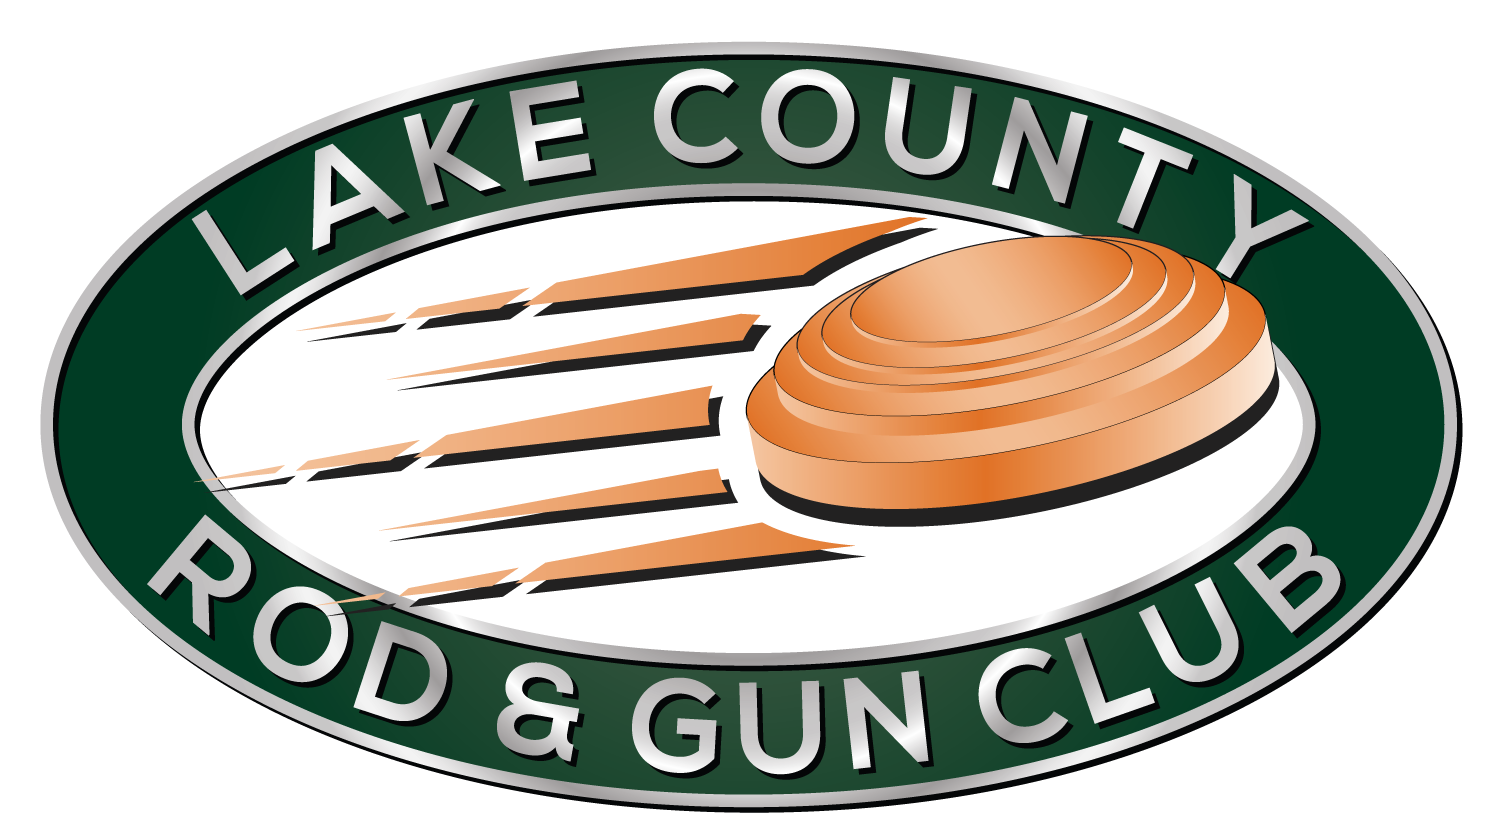 Lake County Rod and Gun Club